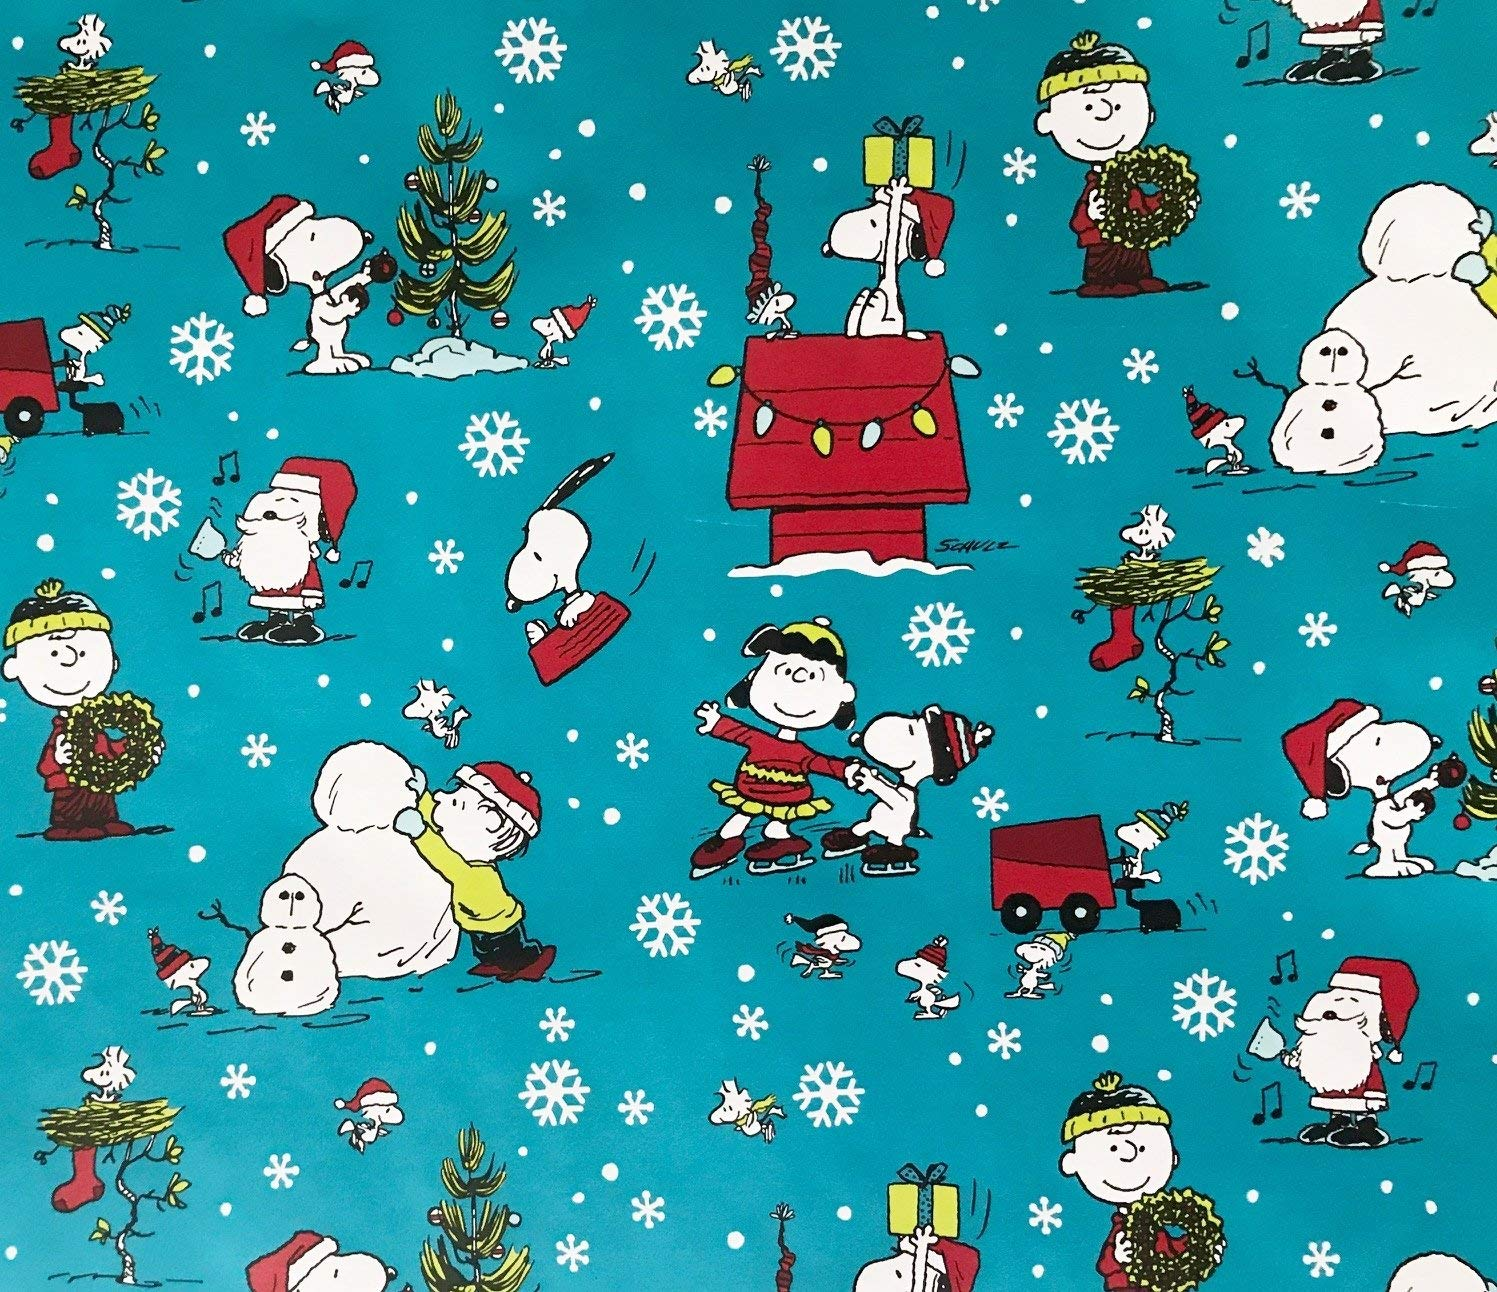 Peanuts Christmas Wrapping Paper Gift Wrap - Snoopy Charlie Brown & Woodstock (2.5 Feet Wide -- 22.5 Square Feet)